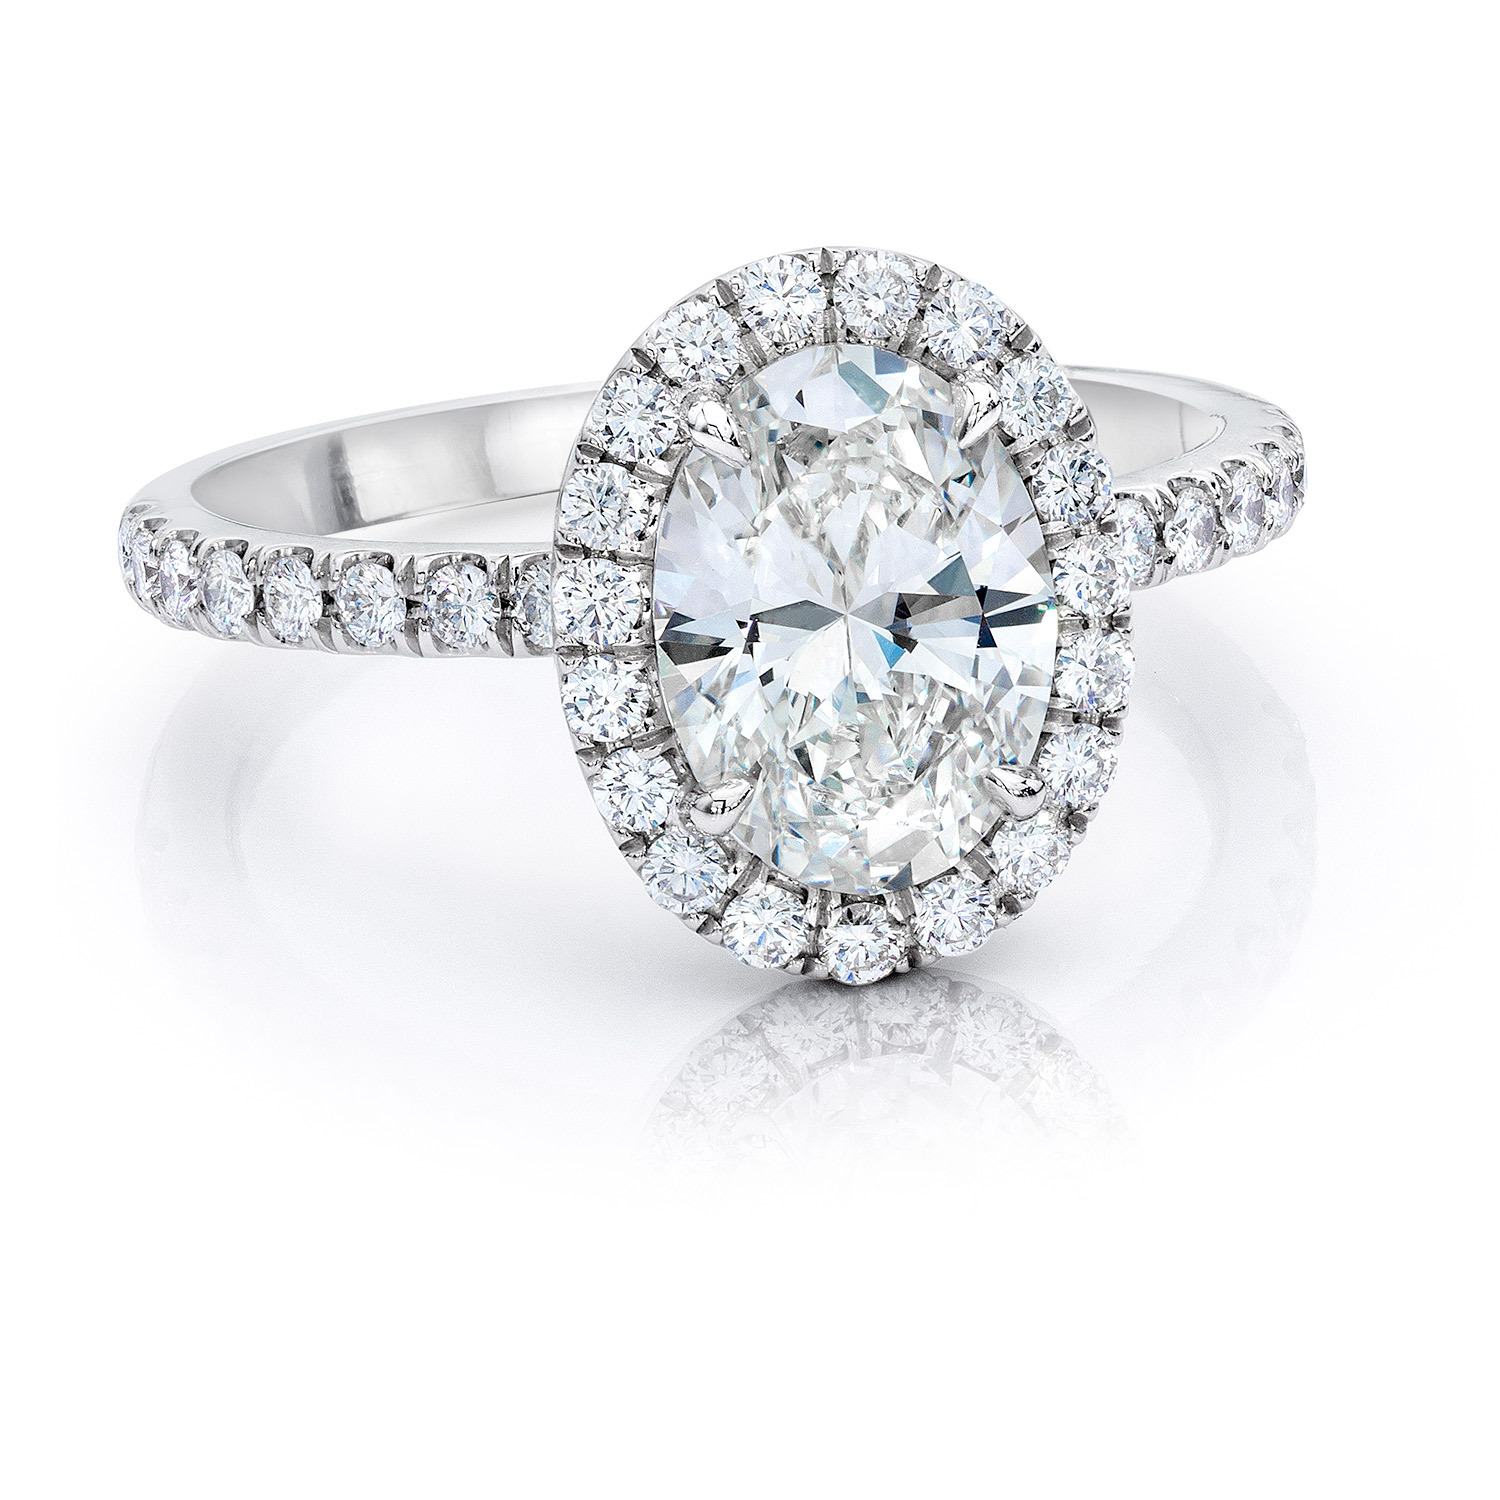 Oval Cut Diamond in Halo Solitaire Ring